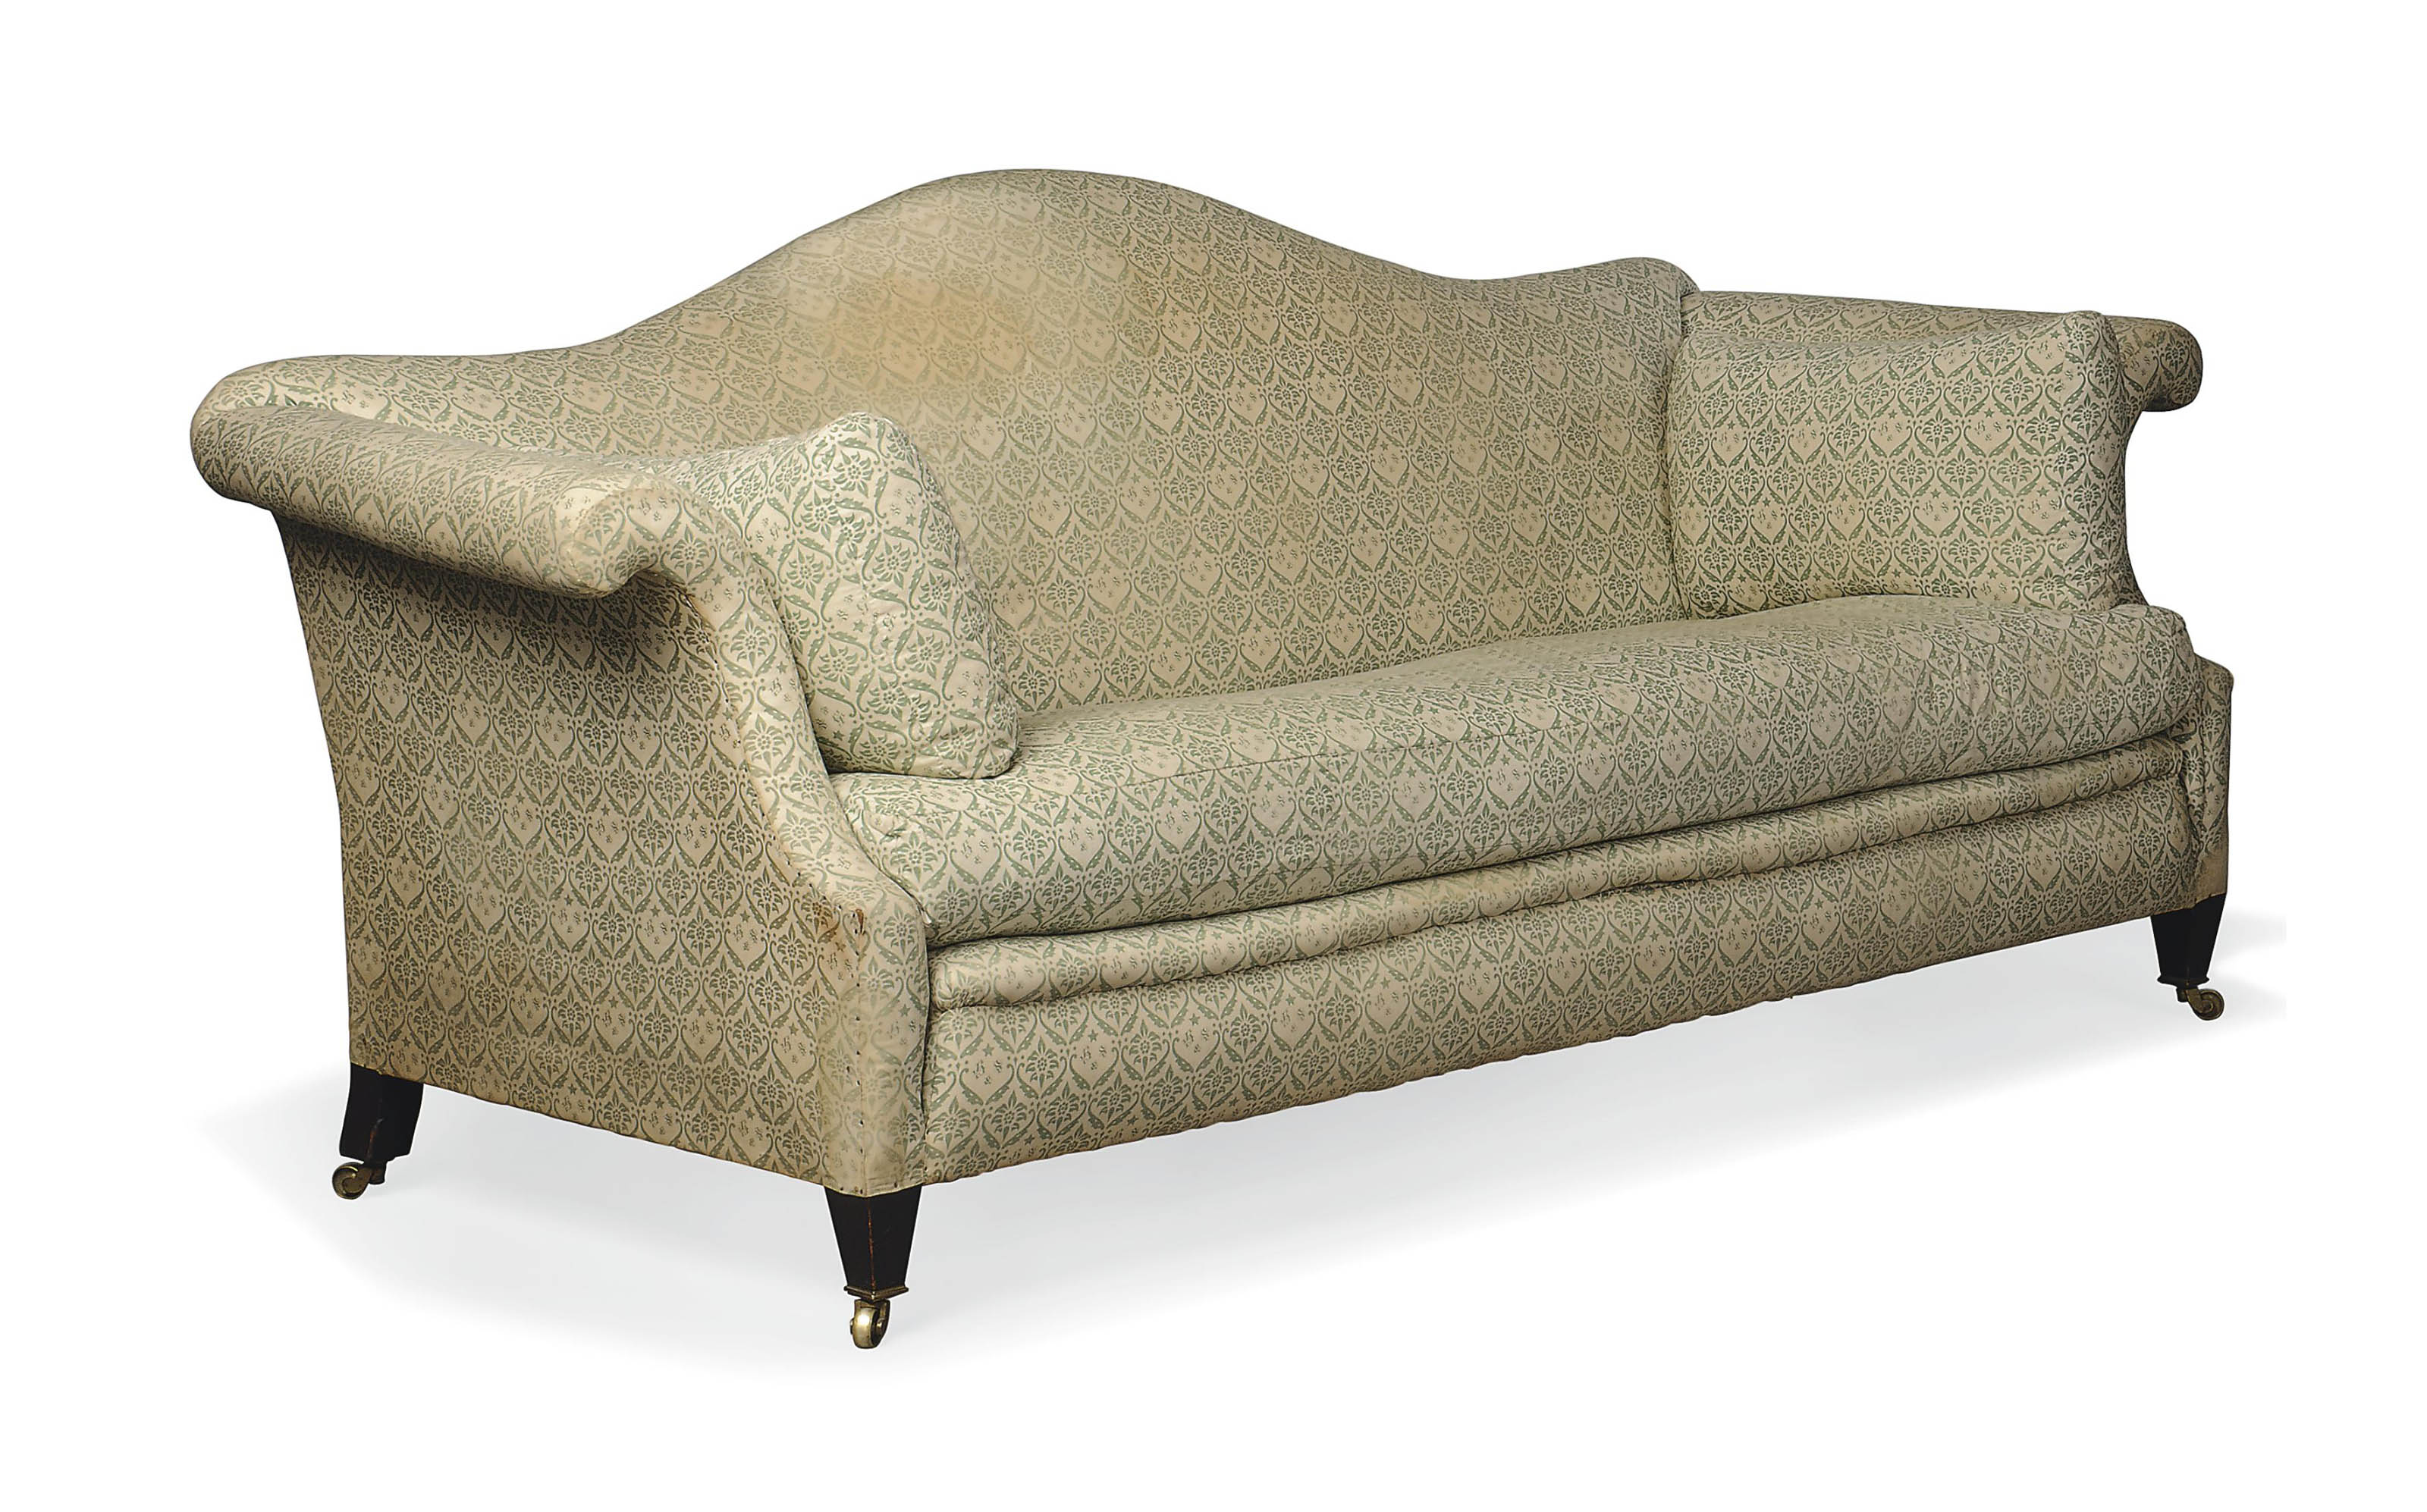 AN EDWARDIAN 'CAMEL' BACK SOFA